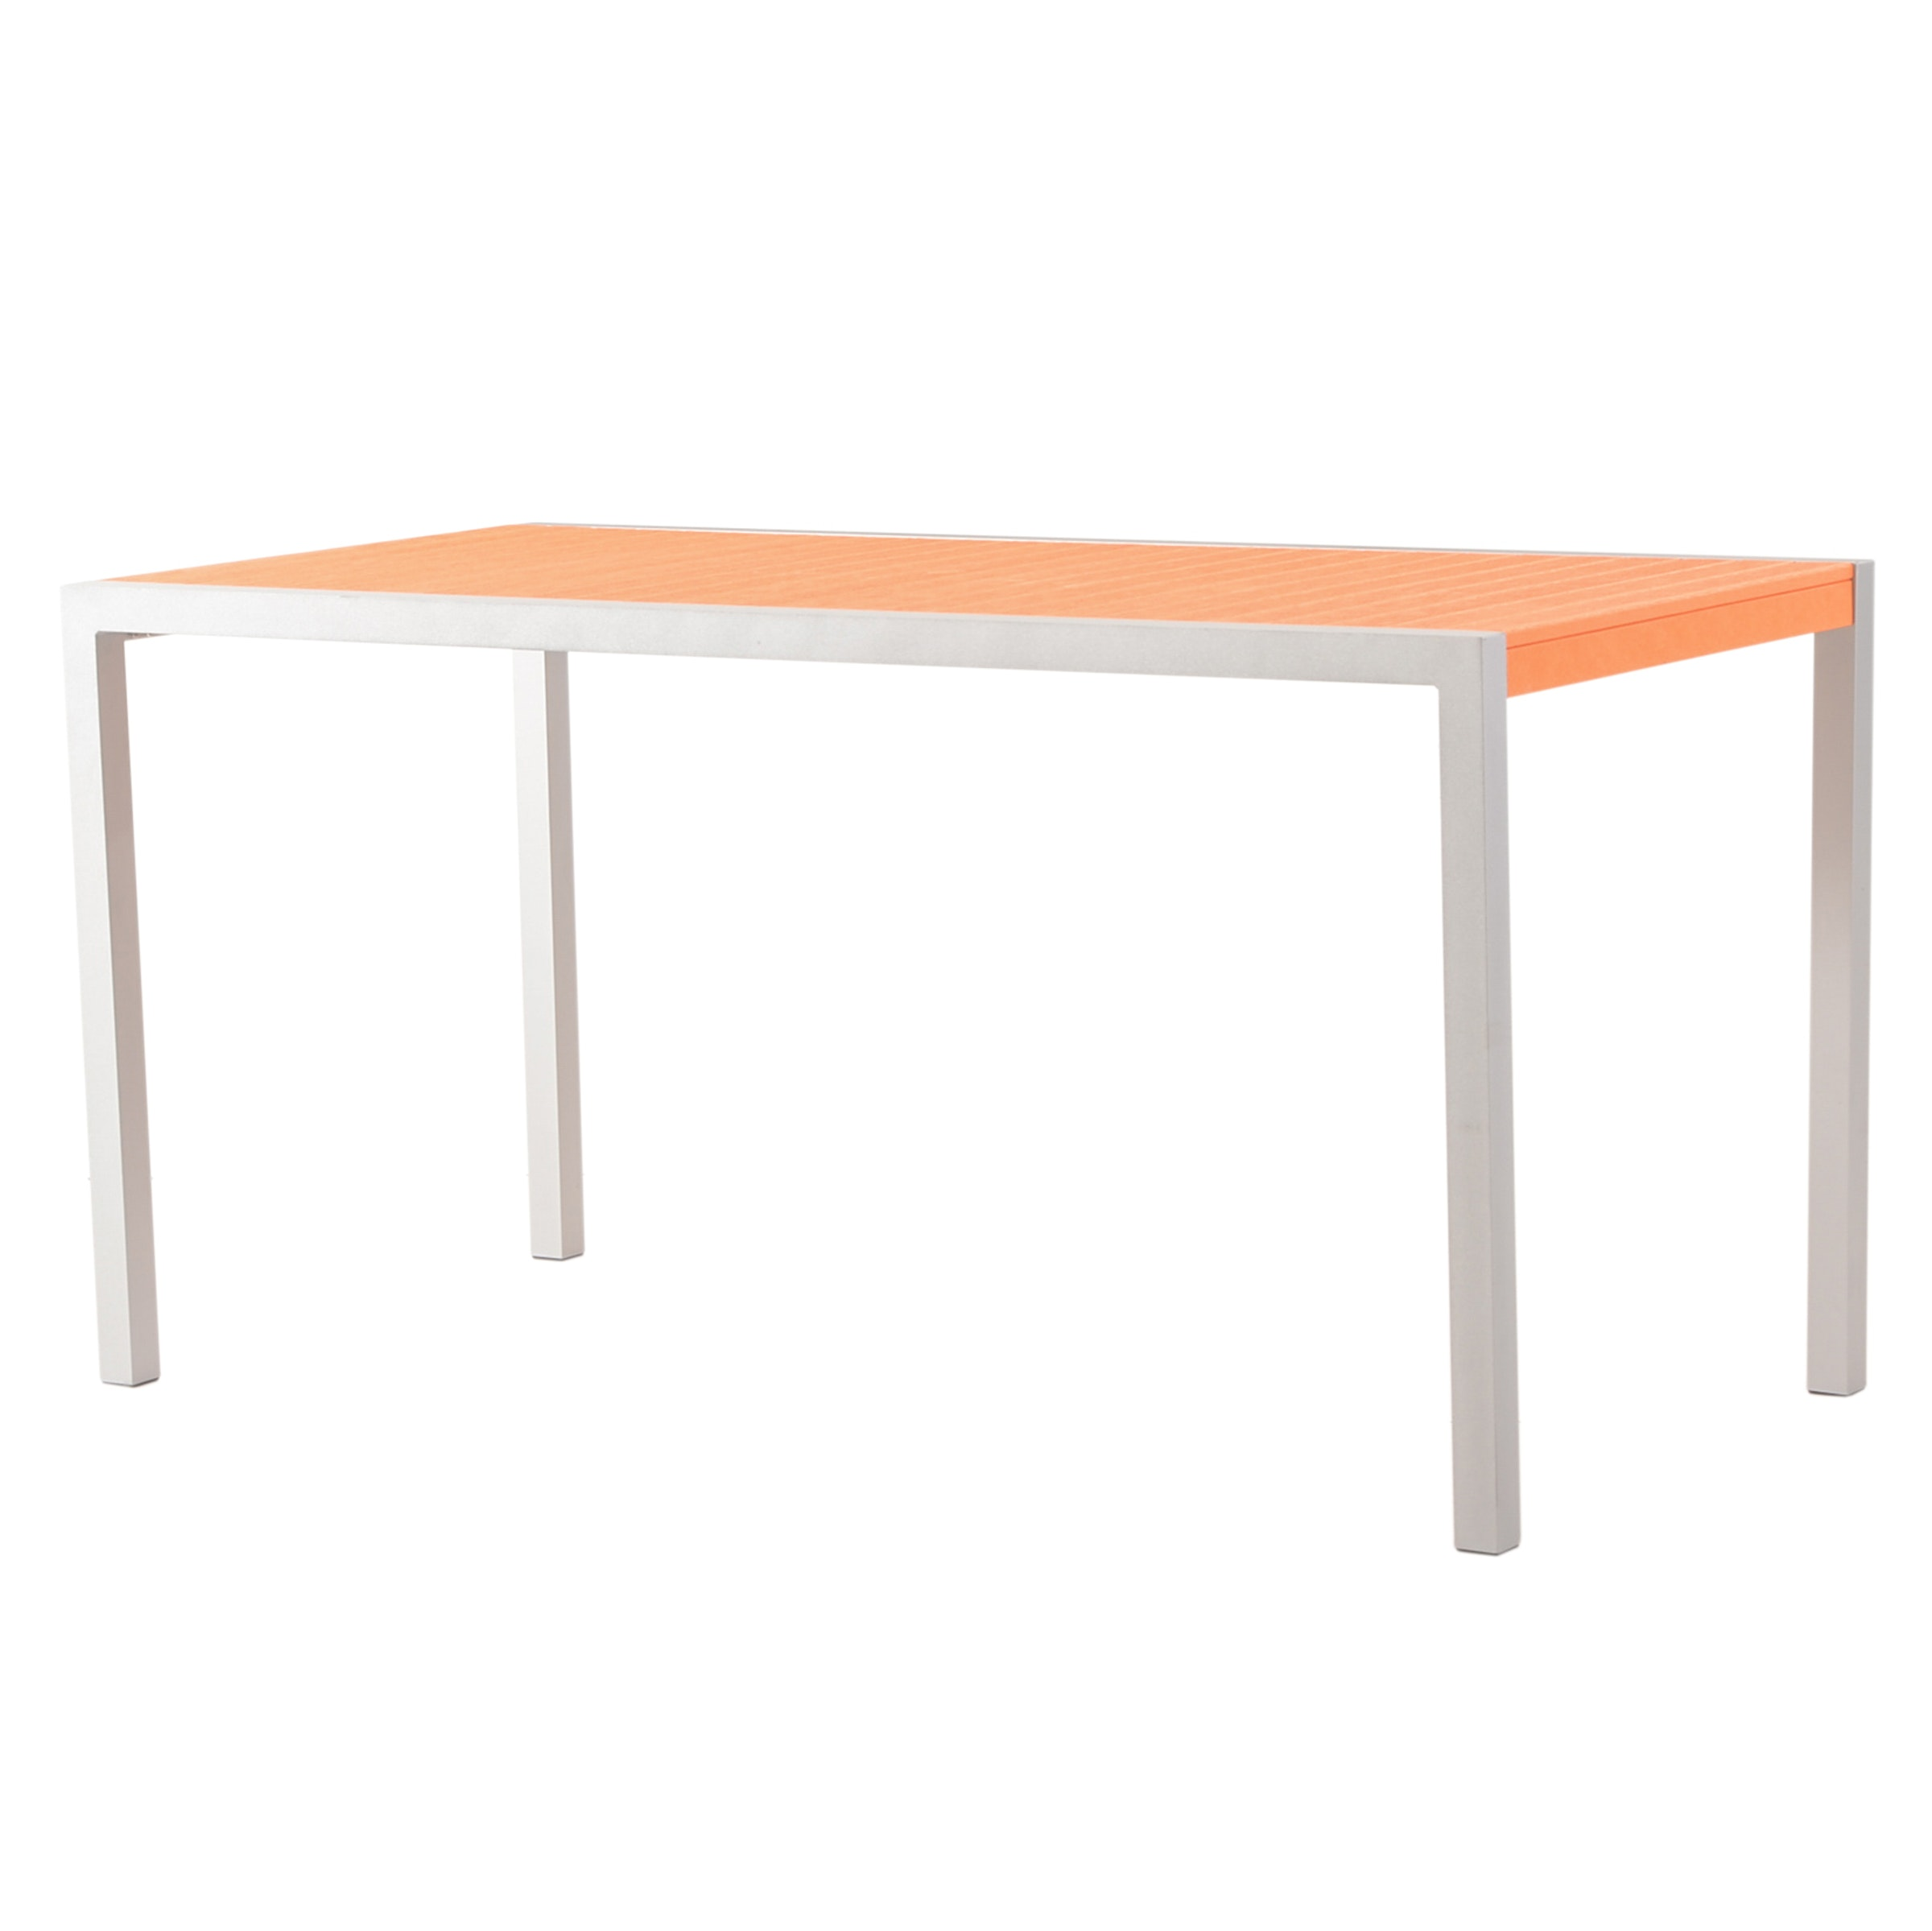 Polywood Orange Plank Bar-Height Table